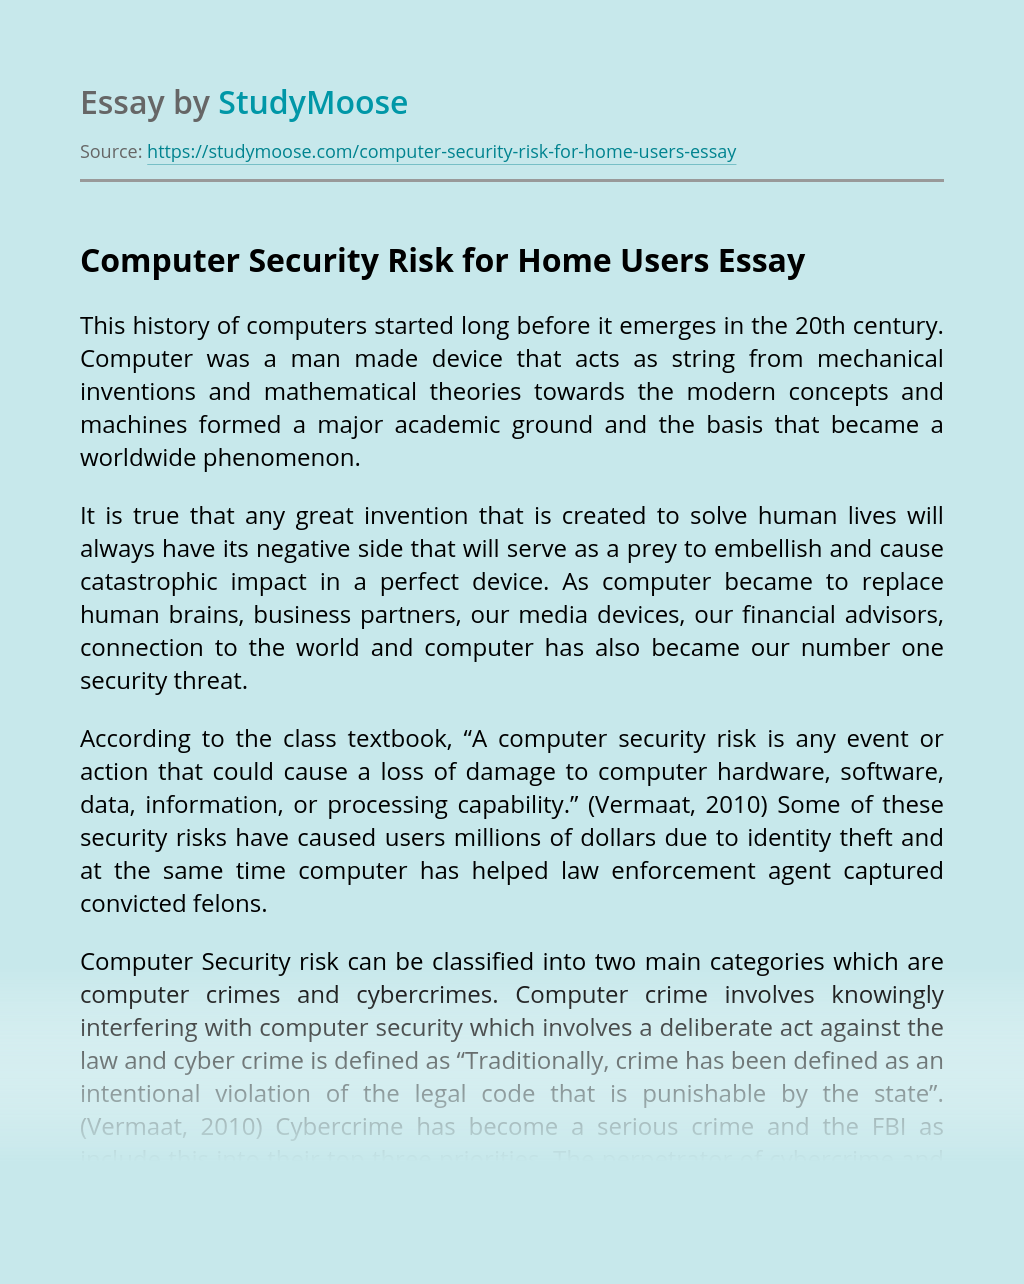 Computer Security Risk for Home Users